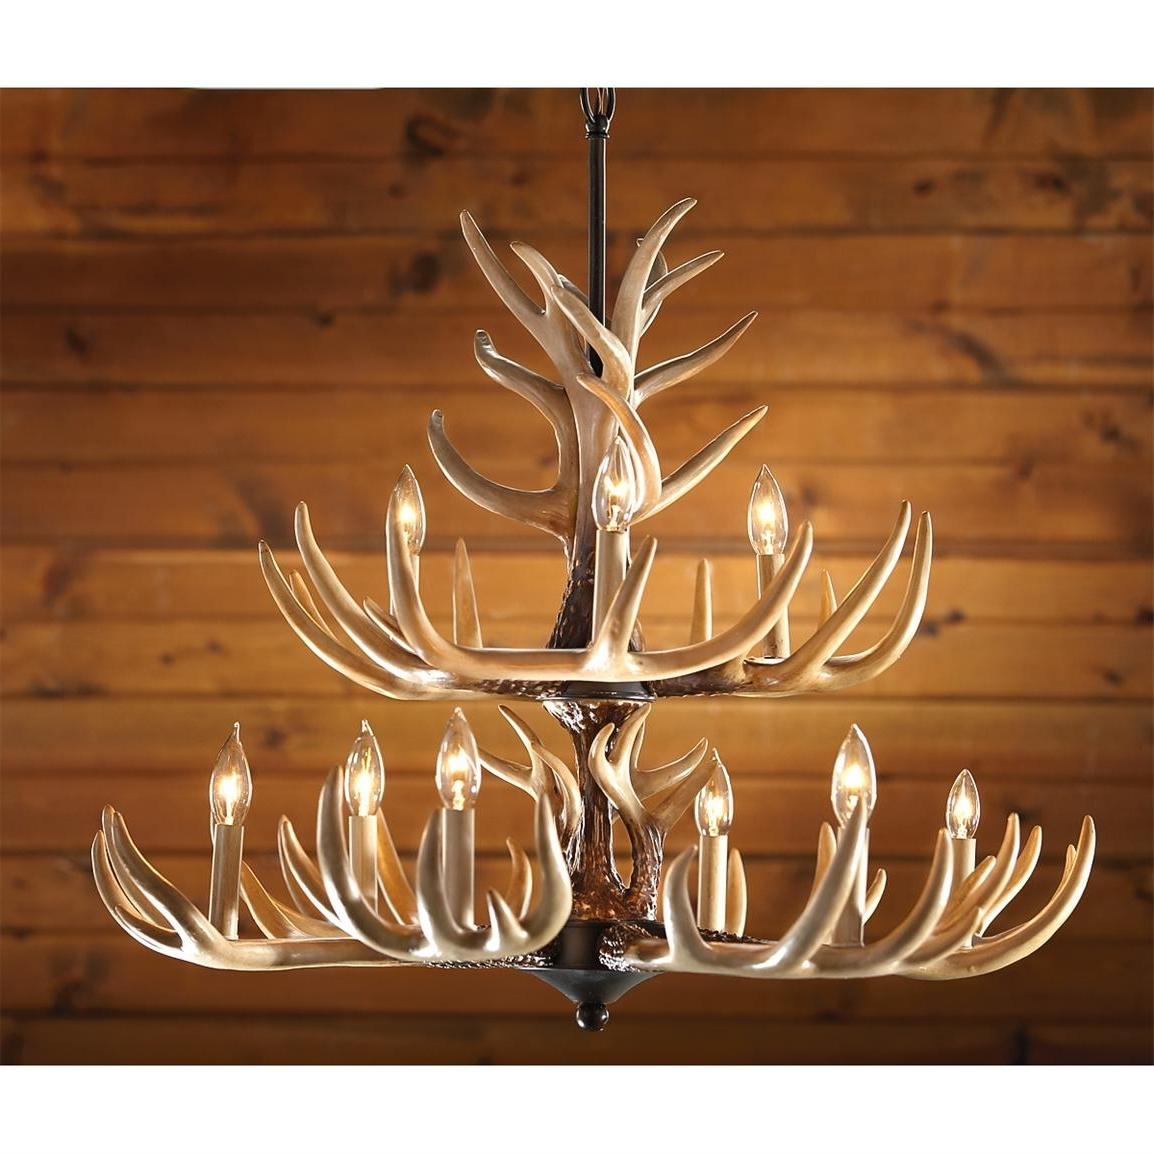 Most Recent Castlecreek 9 Light Whitetail Antler Chandelier – 226093, Lighting Pertaining To Antler Chandeliers And Lighting (View 2 of 15)